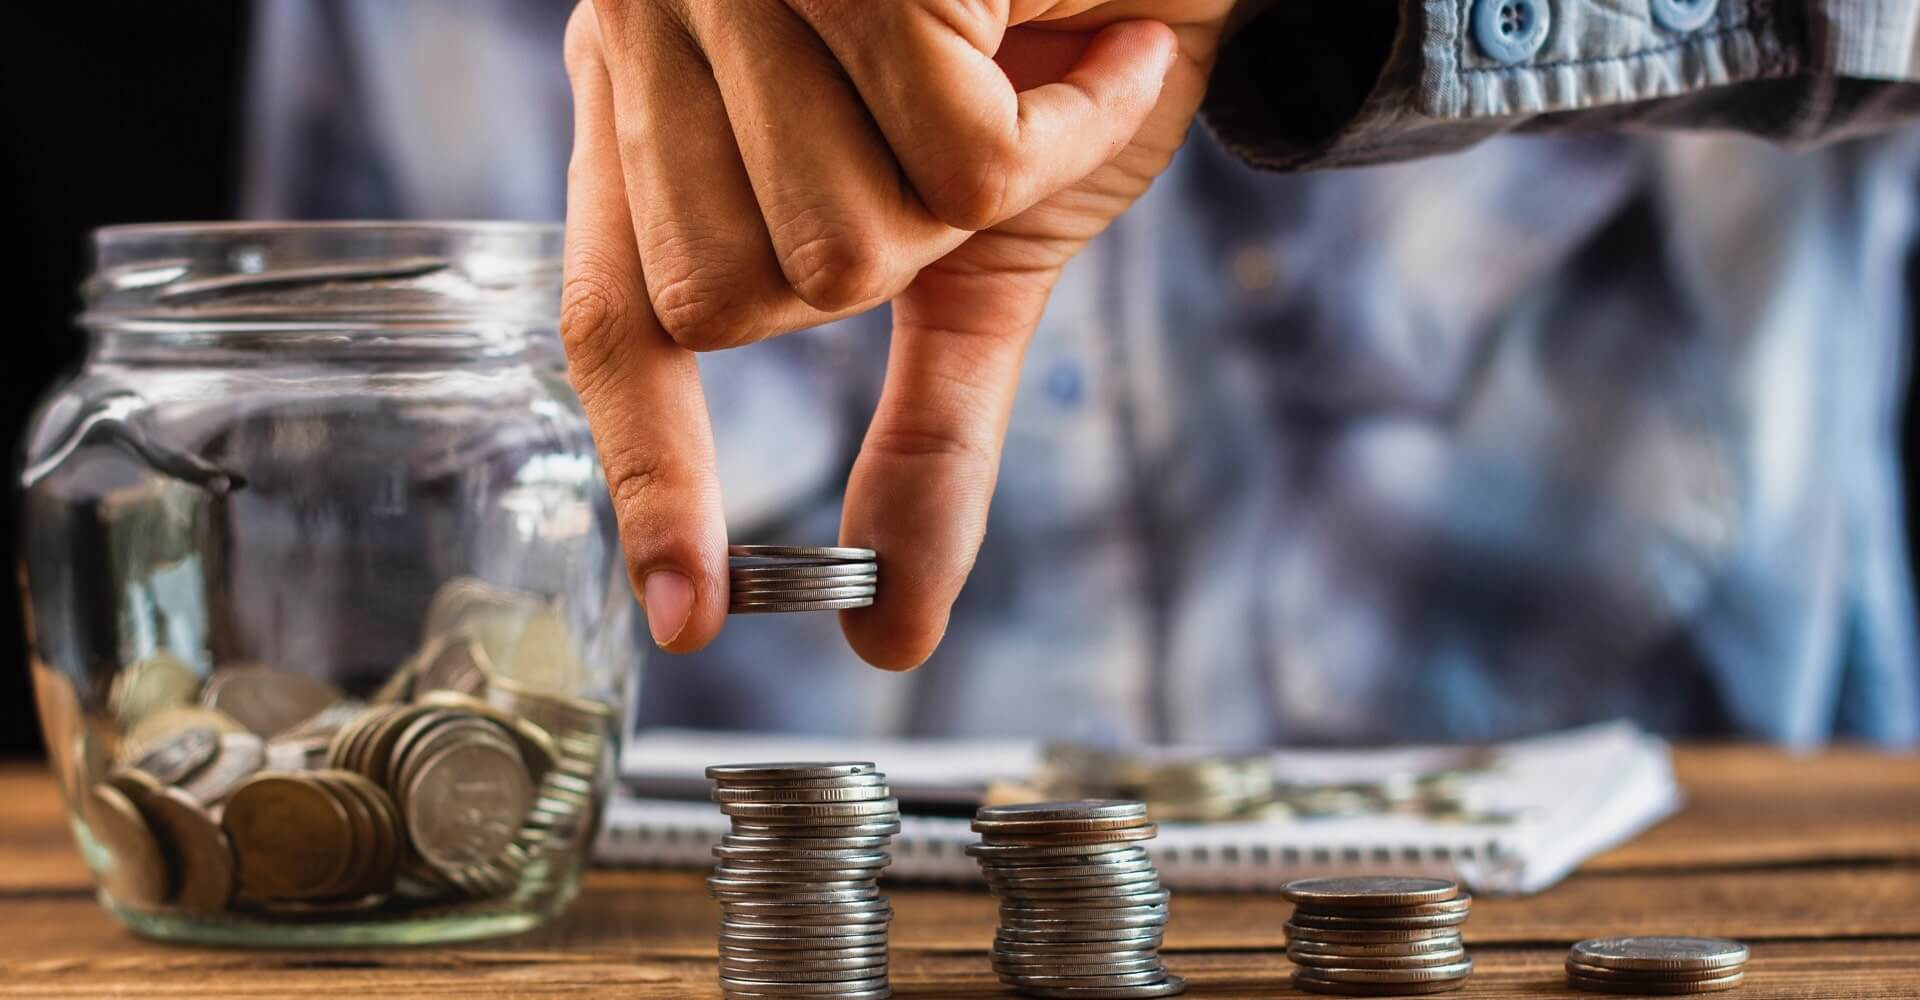 How to find the best savings account